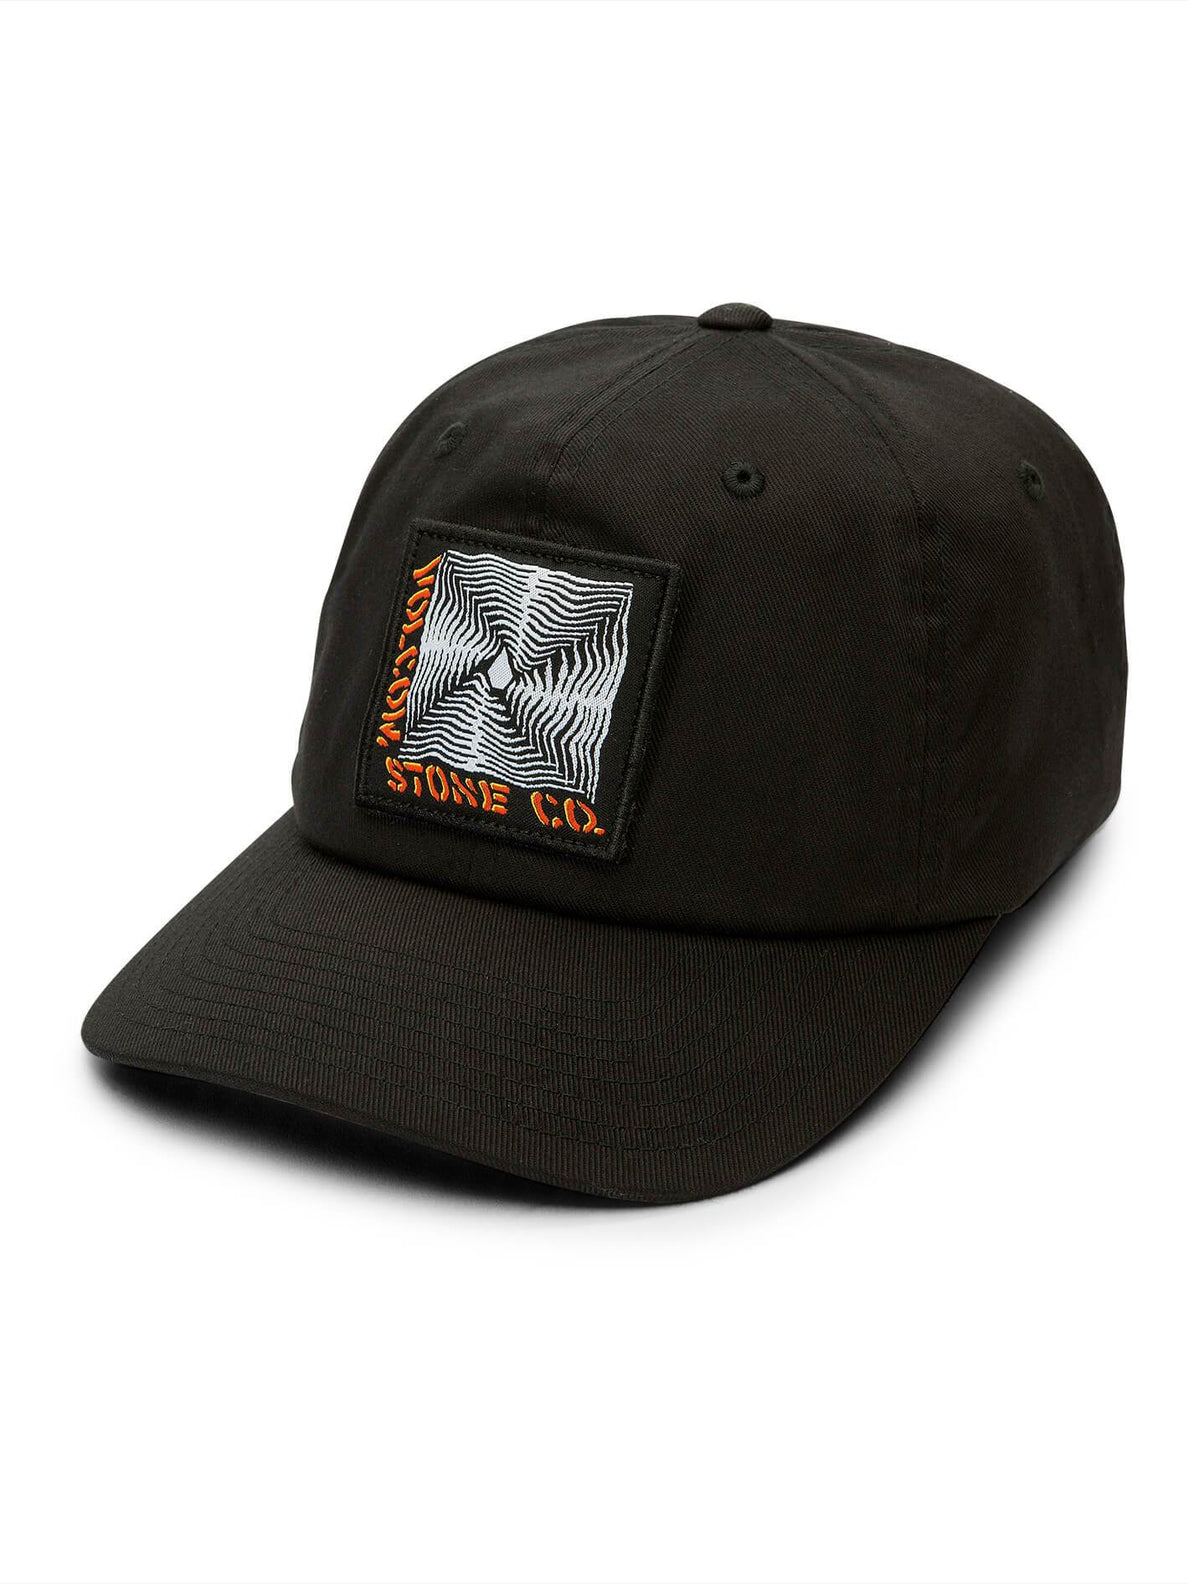 Stone Radiator Xfit Hat In Black, Front View